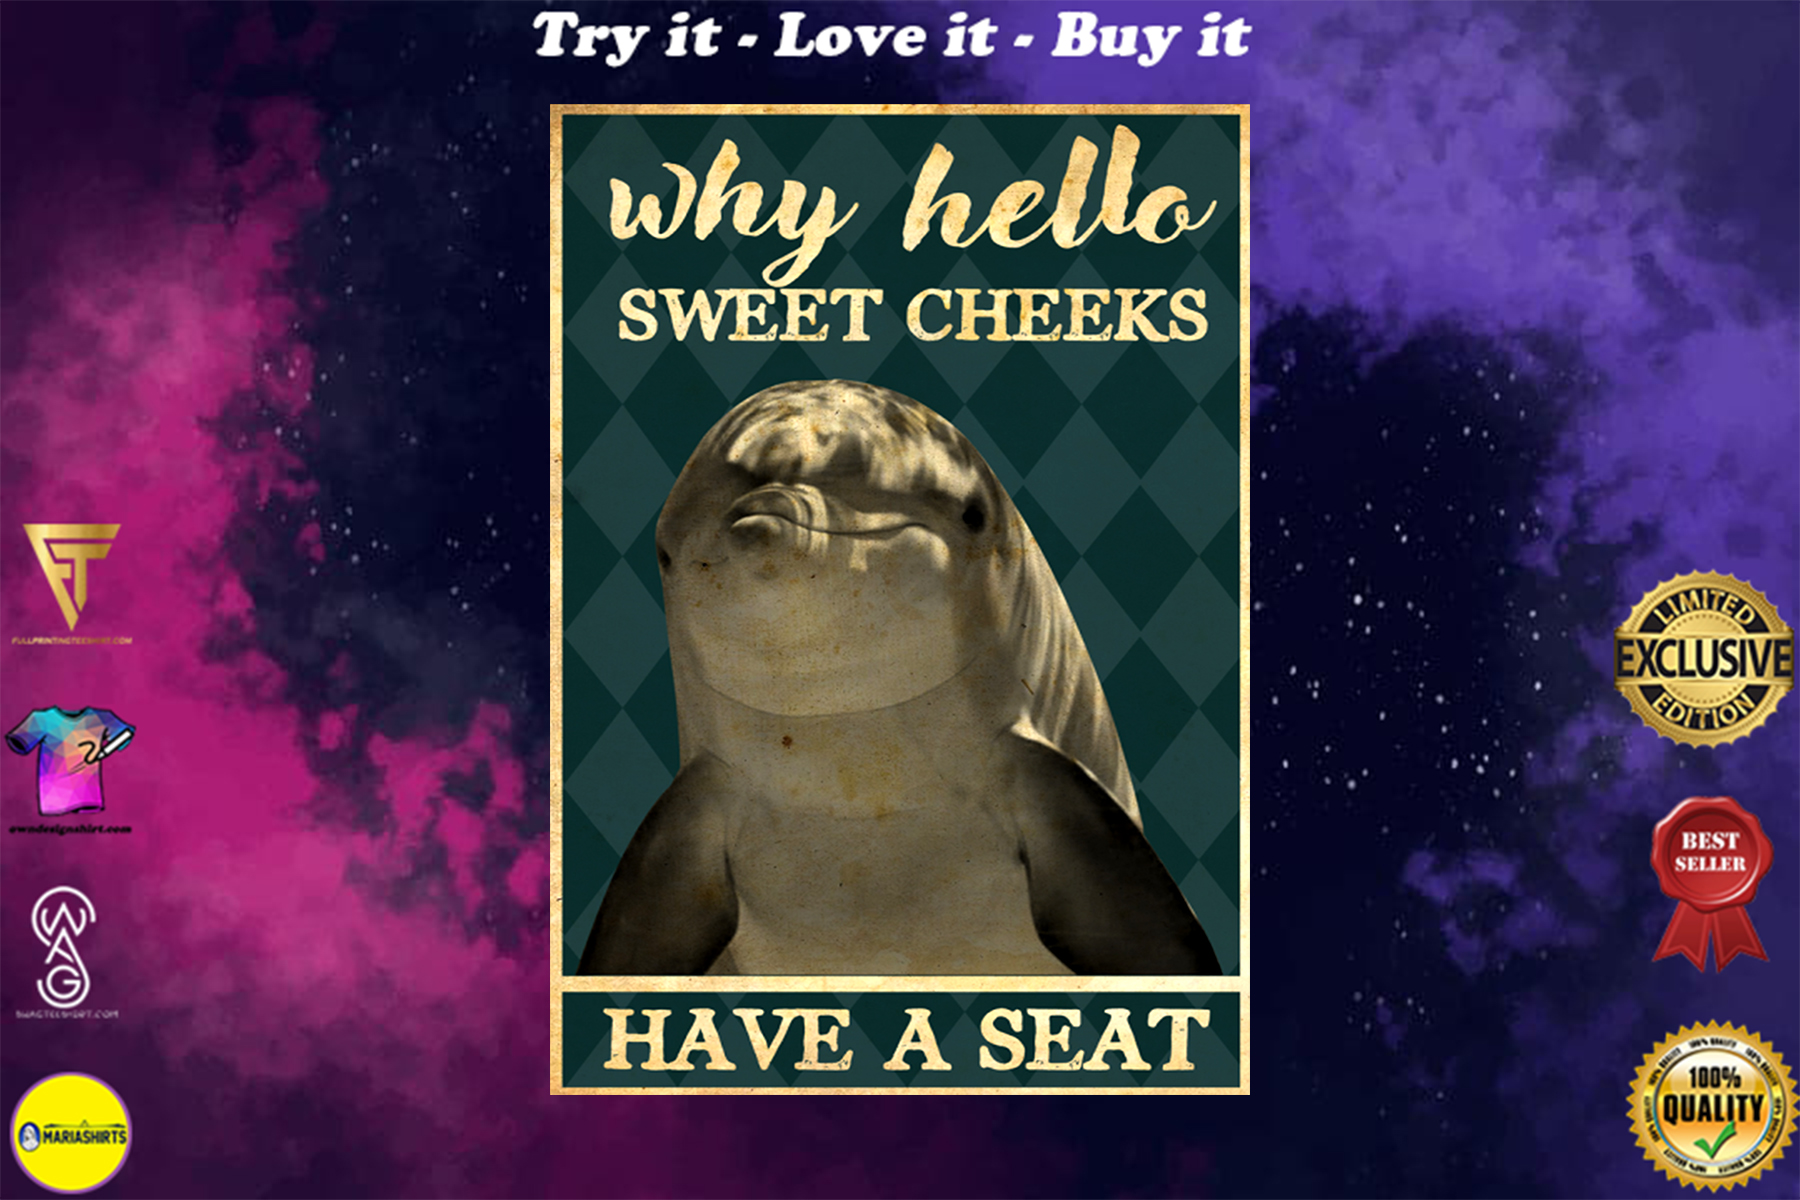 dolphin why hello sweet cheeks have a seat vintage poster